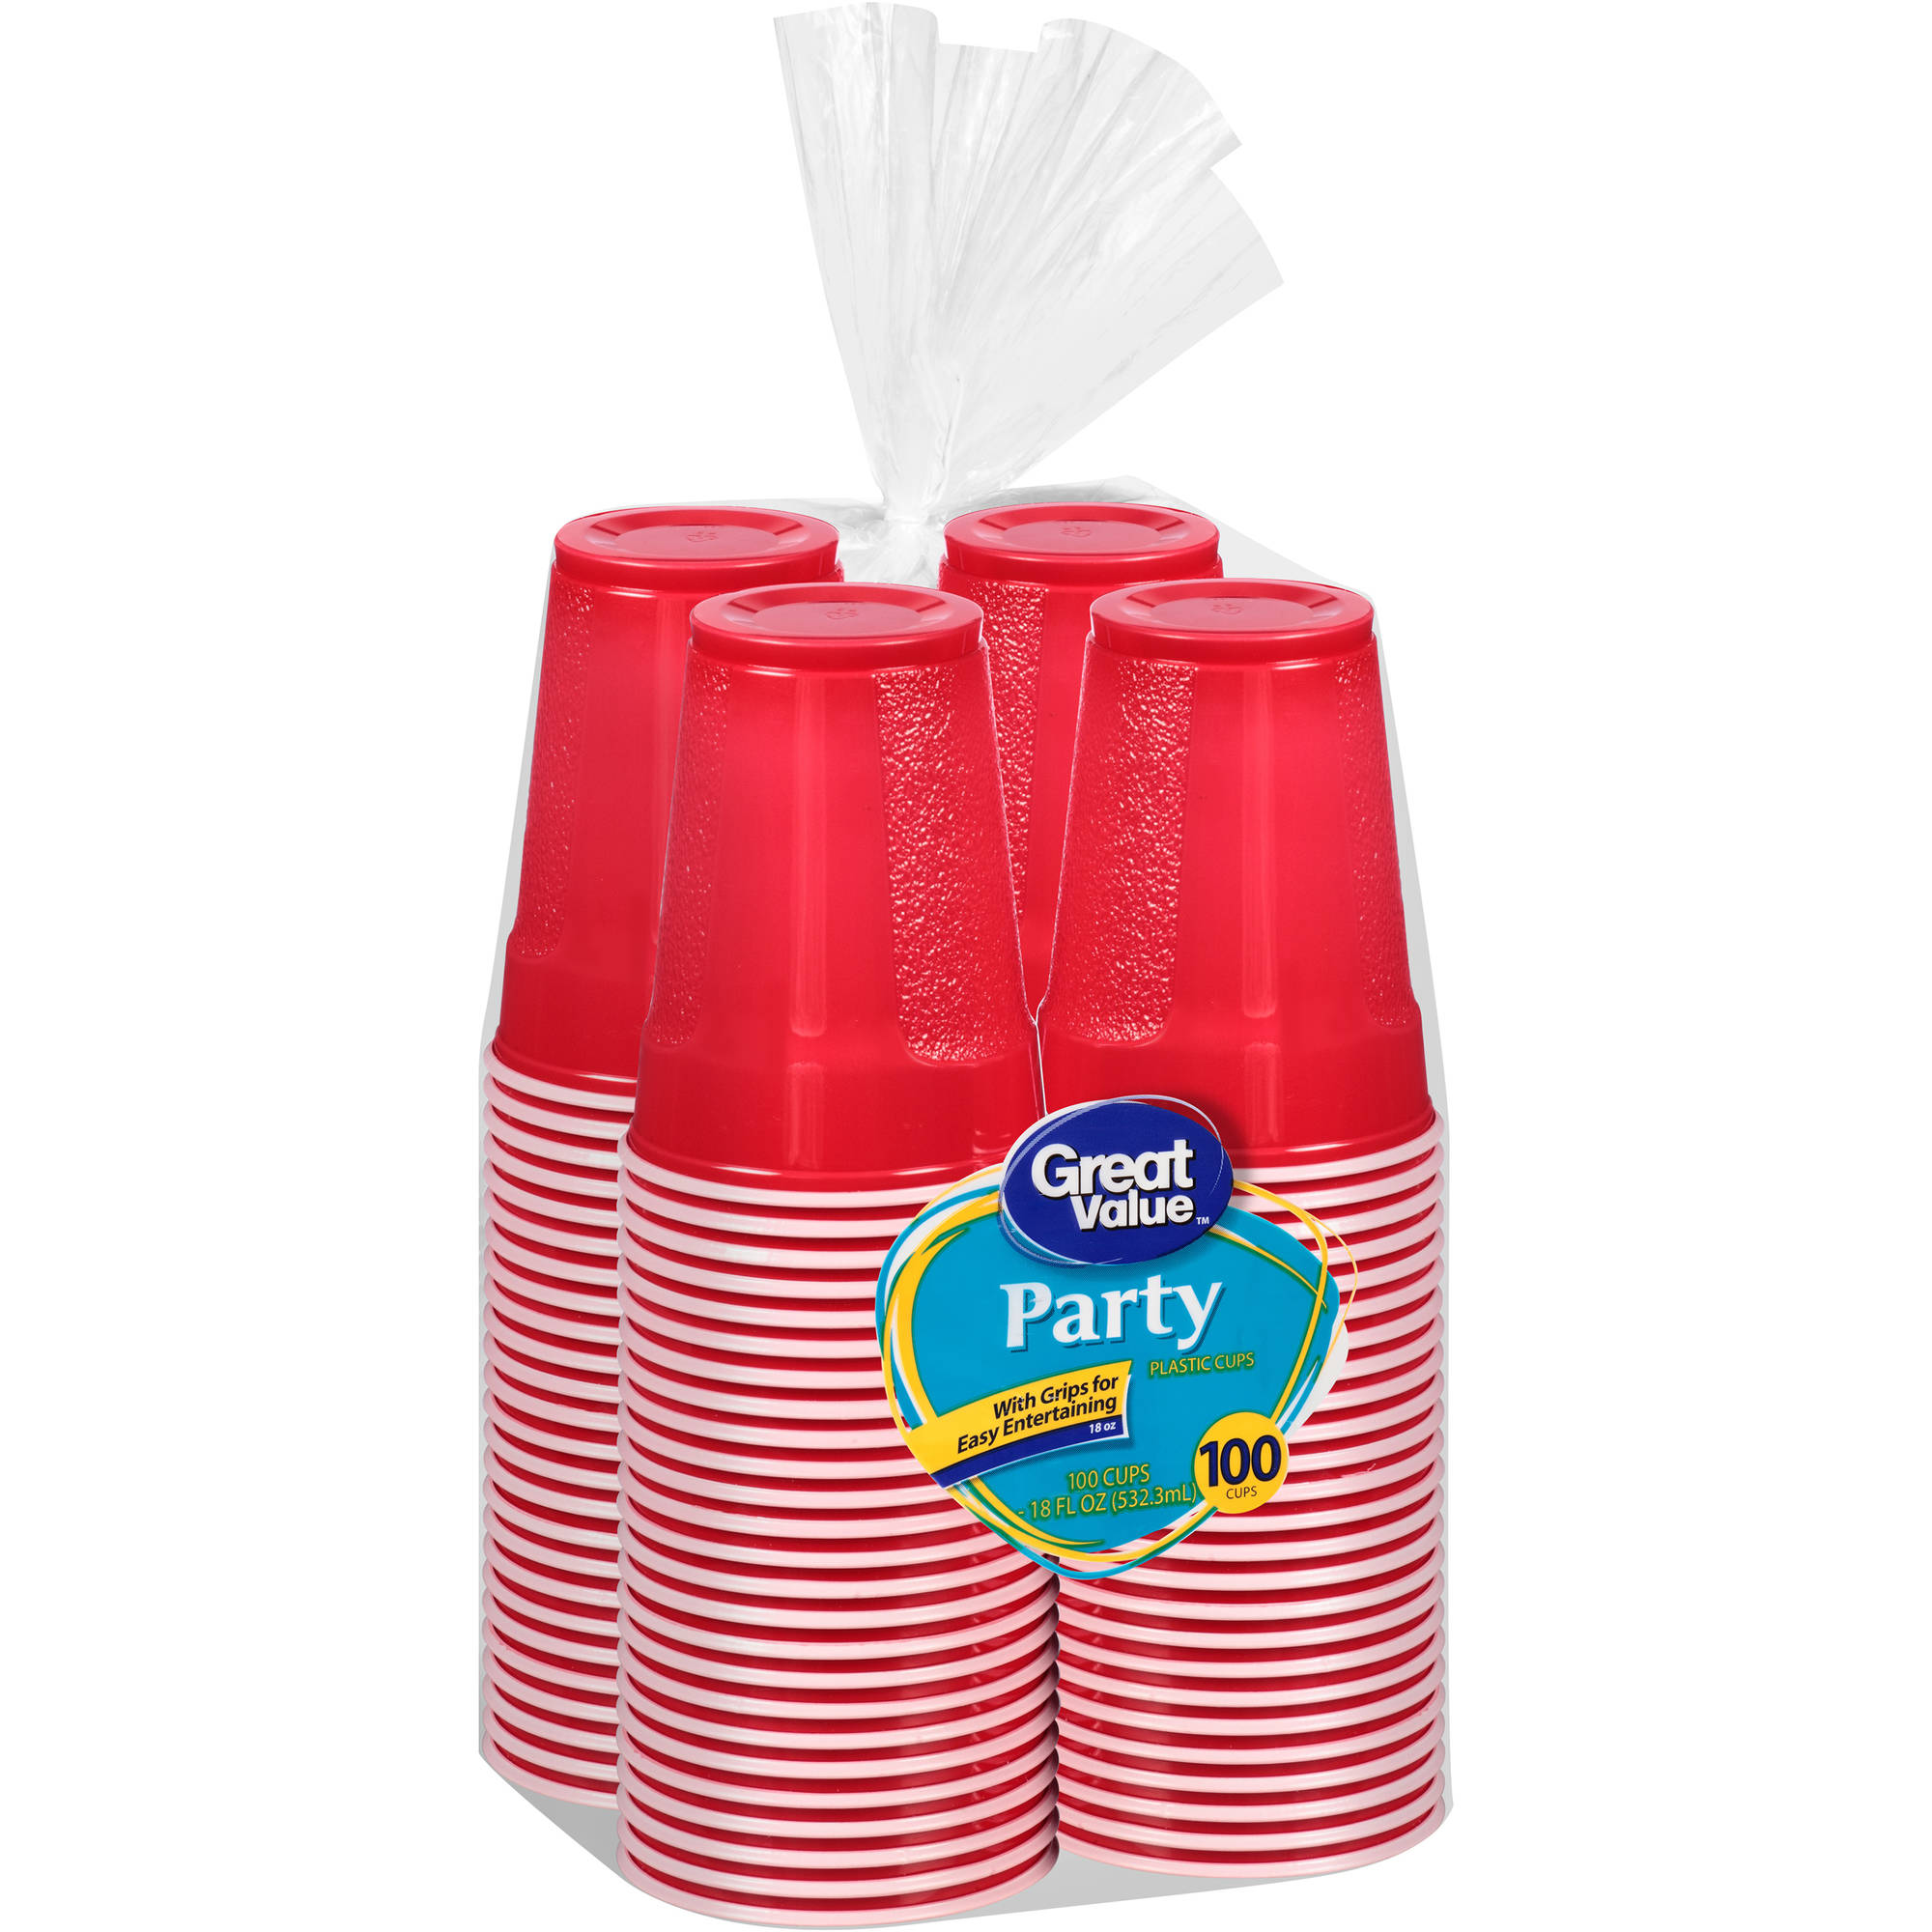 Great Value Party 18 Oz Cups, 100ct